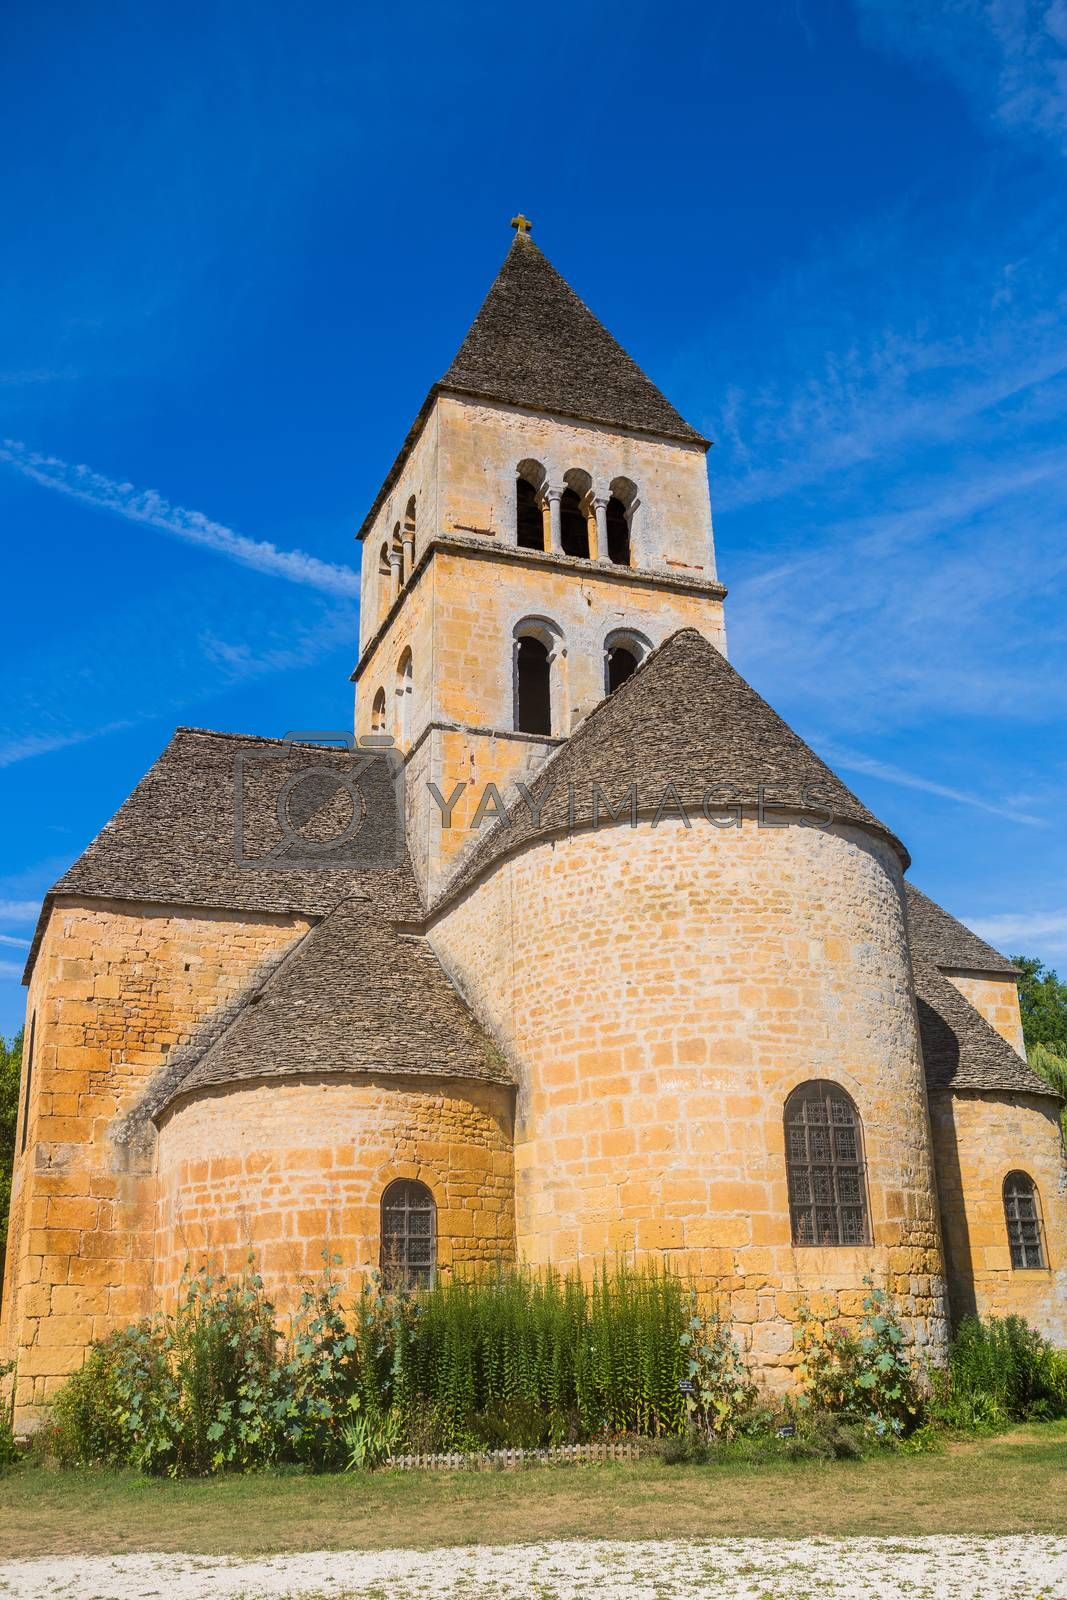 The Romanesque church (XIIth century), classified as a historical monument in Saint-Leon-sur-Vezere, Dordogne, France